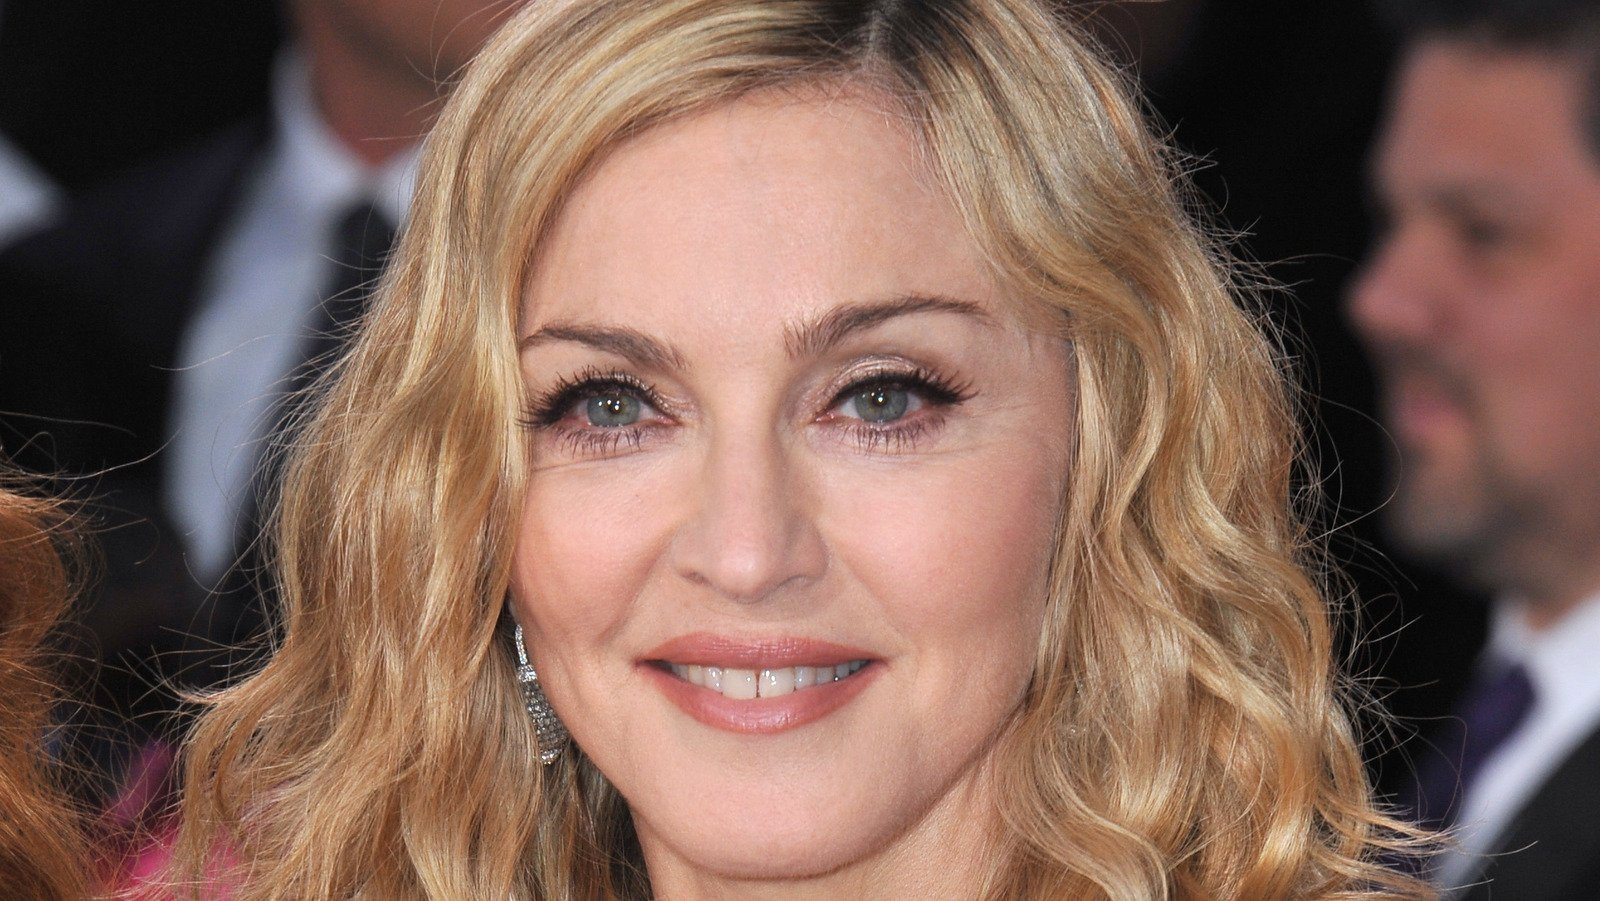 Why Doesn't Madonna Live In The US Anymore?